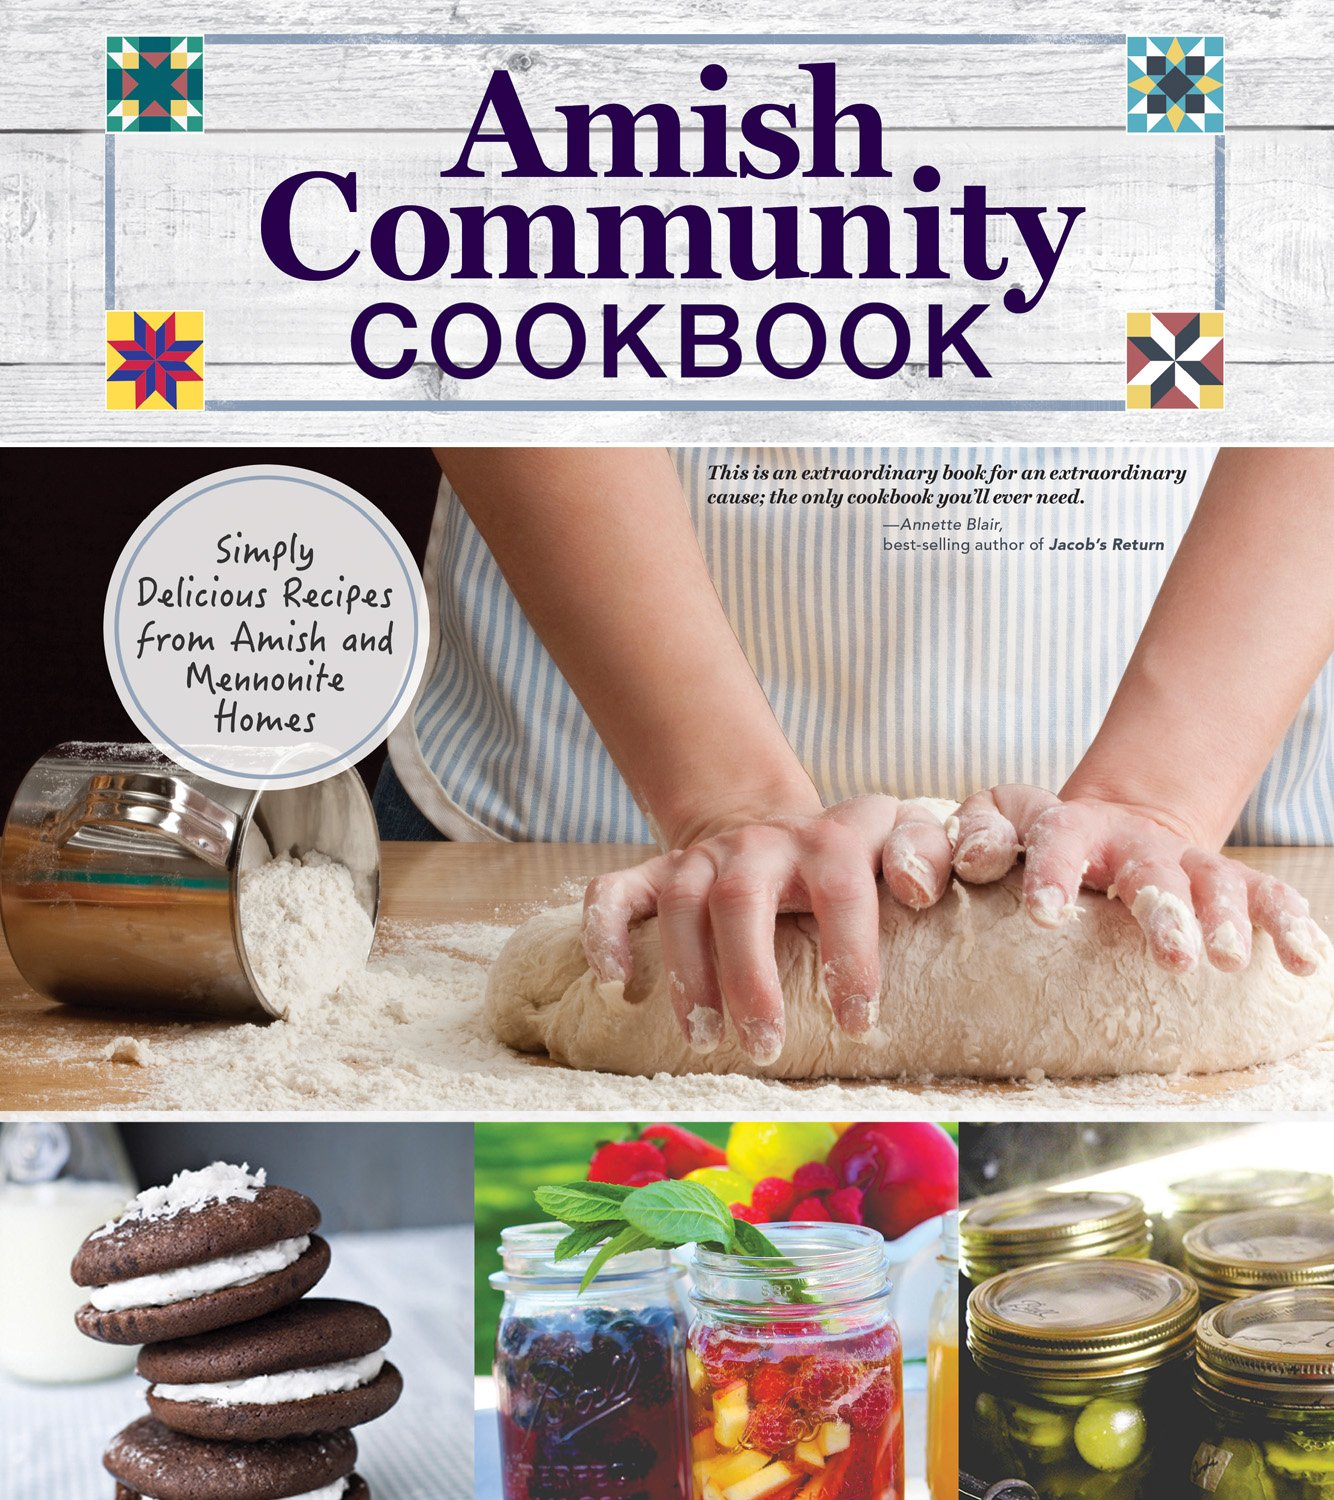 amish community cookbook simply delicious recipes from amish and amish community cookbook simply delicious recipes from amish and mennonite homes carole roth giagnocavo mennonite central committee 9781565238787